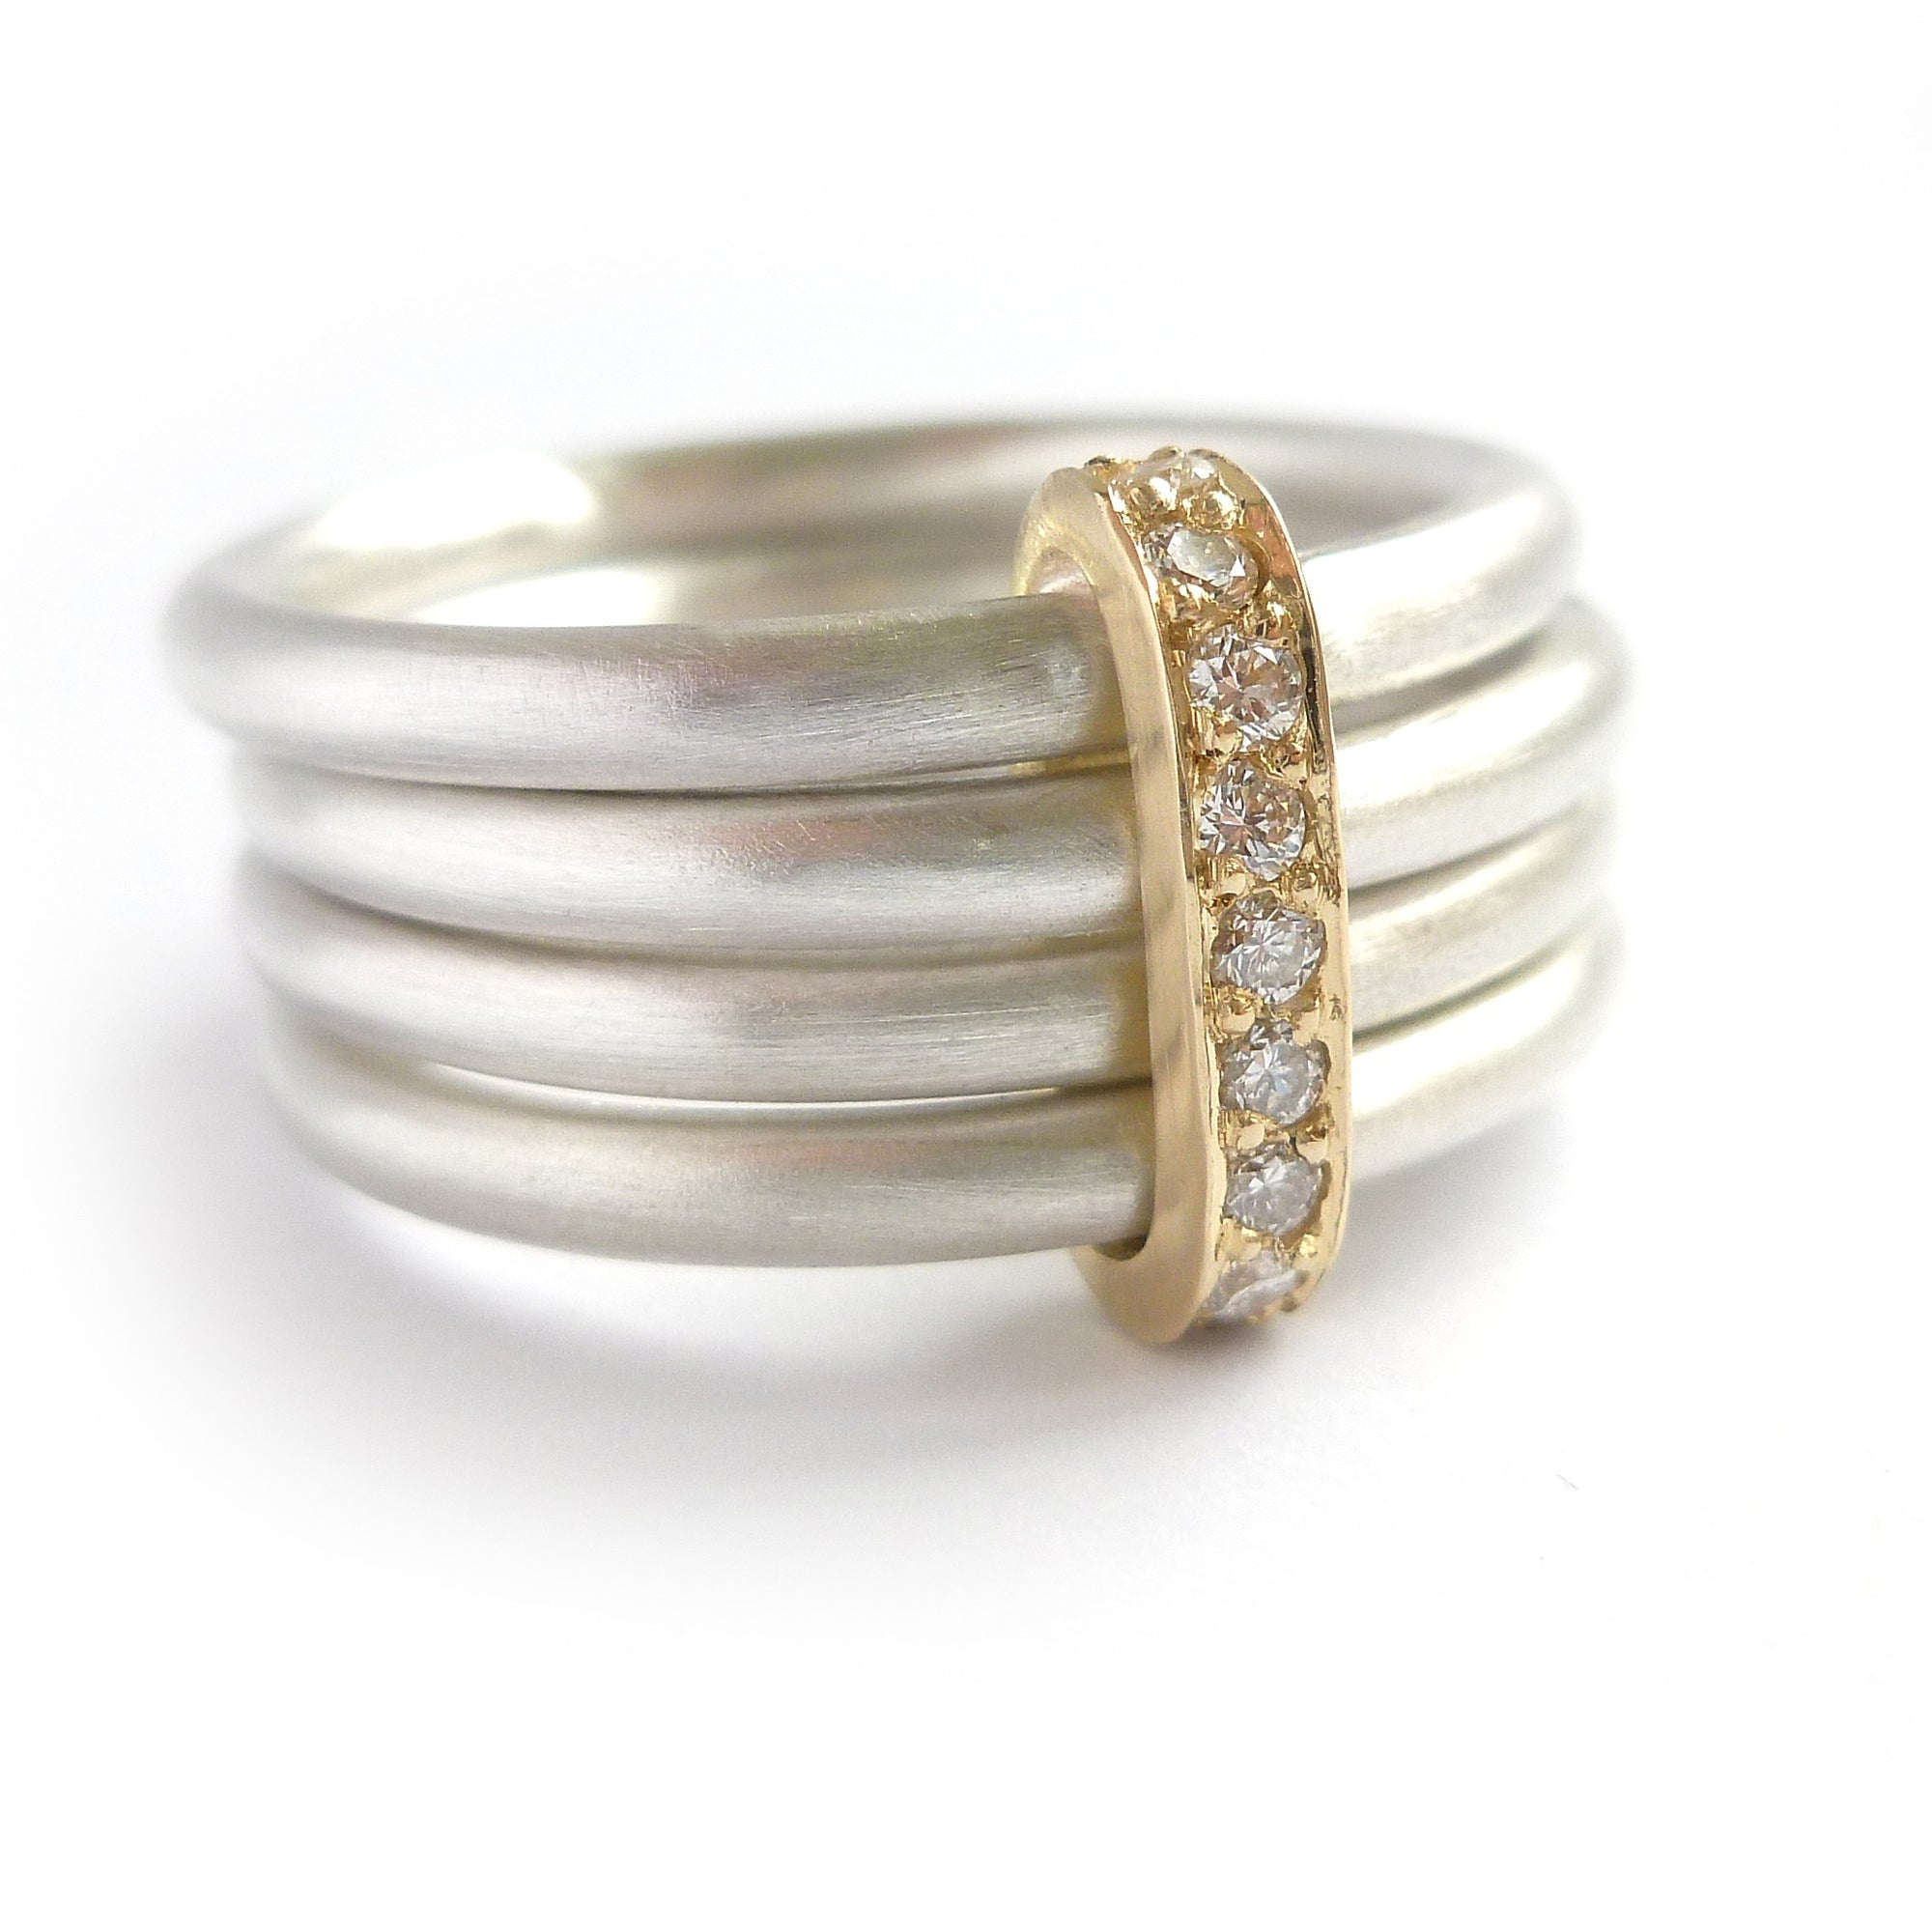 Four 4 band modern contemporary silver and gold two tone pave set diamond ring handmade by Sue Lane